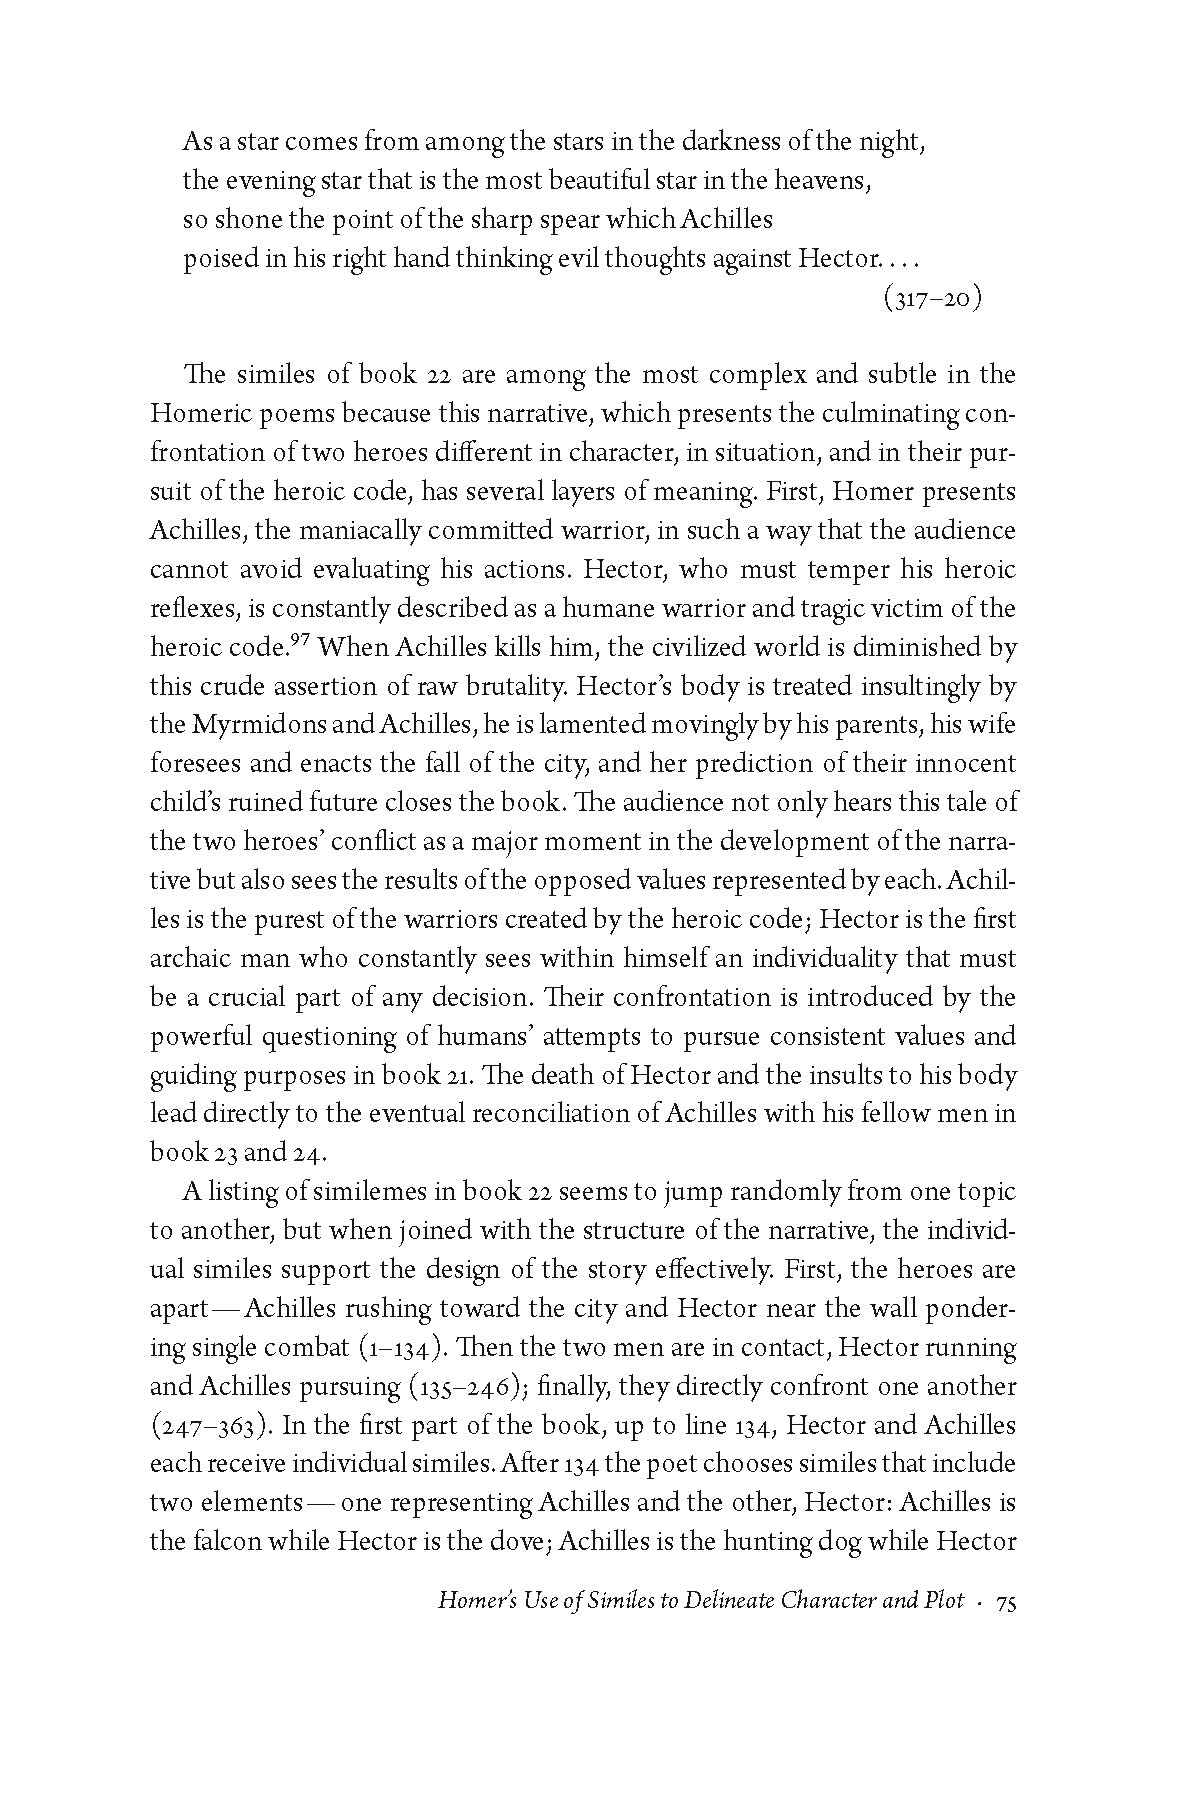 the iliad essay theseus hero of athens essay heilbrunn timeline of  essay comparing hector and achilles english literature essays achilles vs hector in the iliad